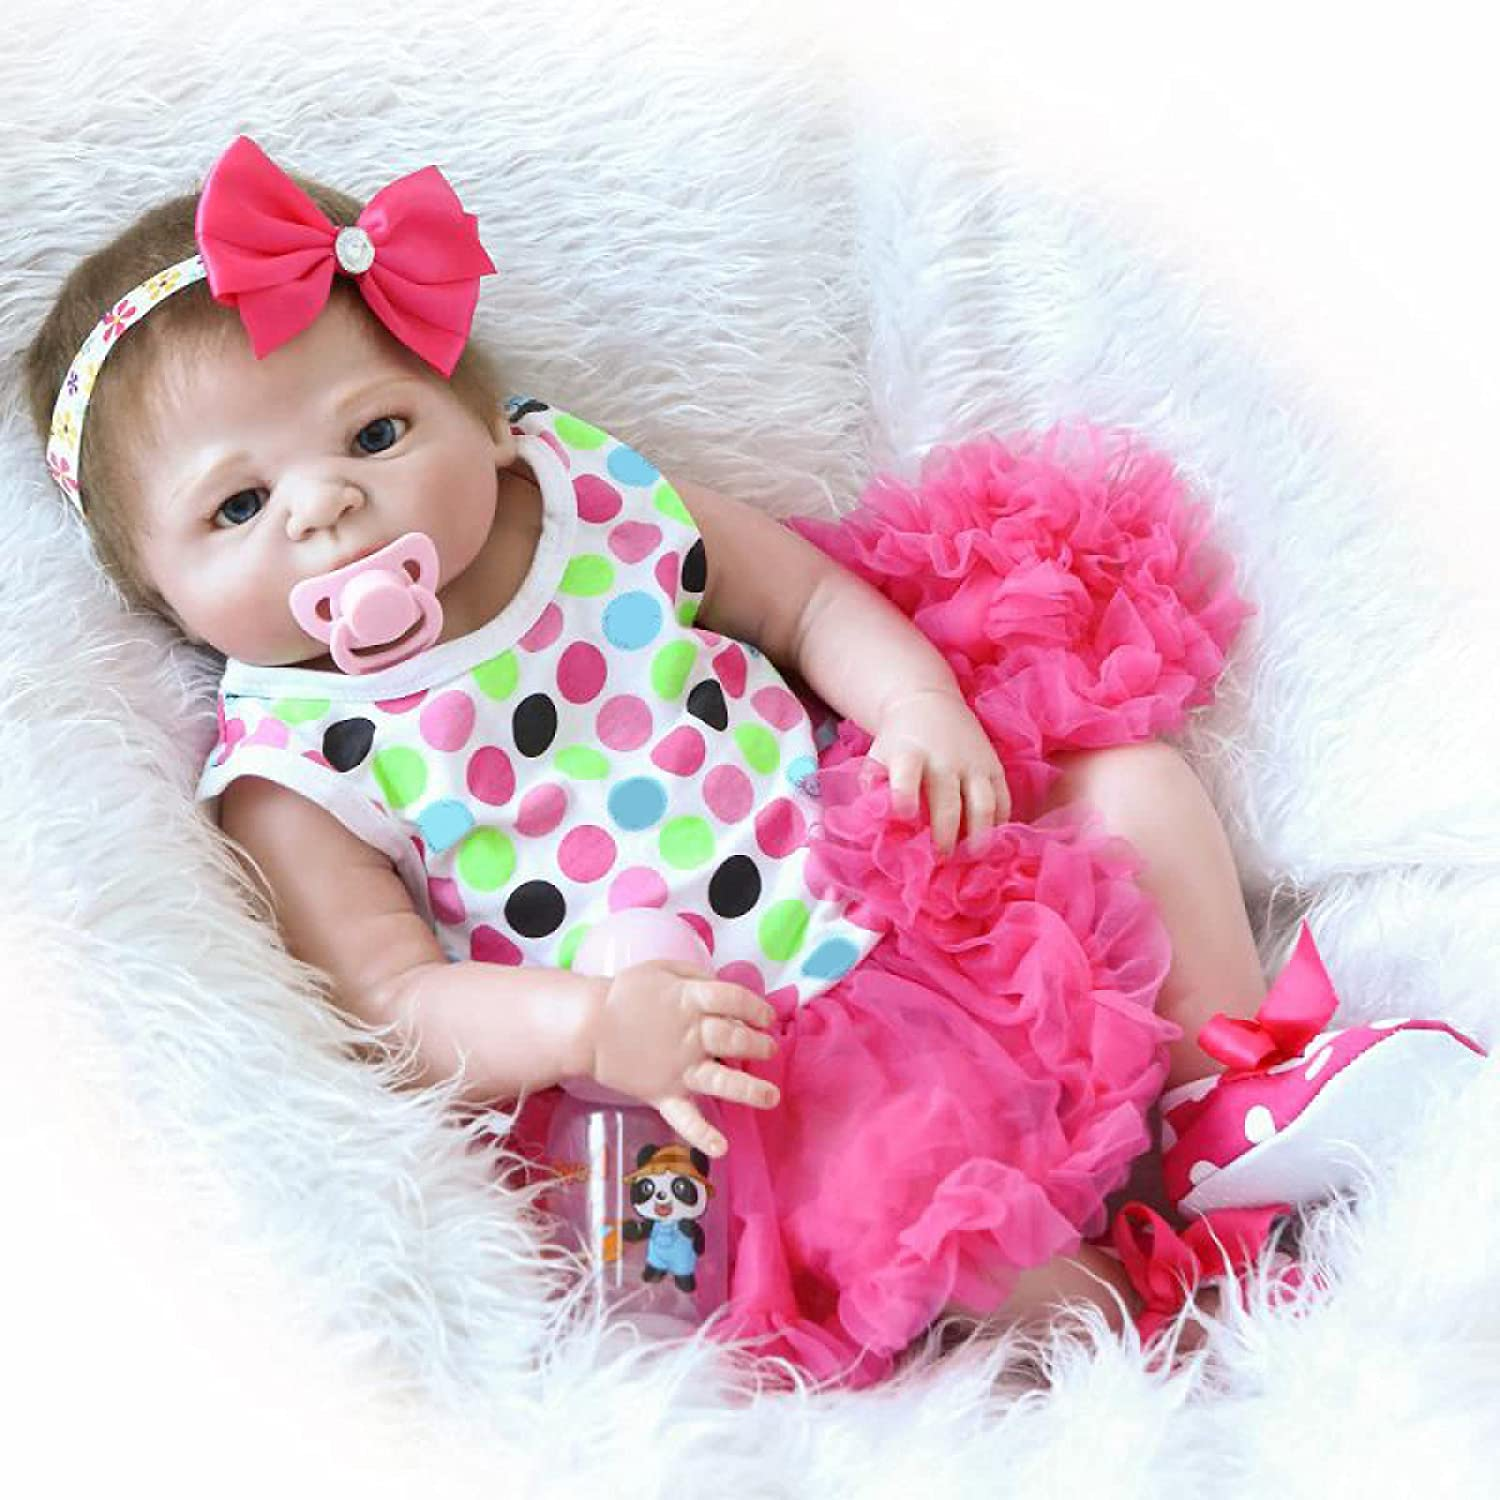 YANRU 2 Year Max 57% OFF Old Girl's Doll 23 Dolls Outstanding H Inch Newborn Baby - Has